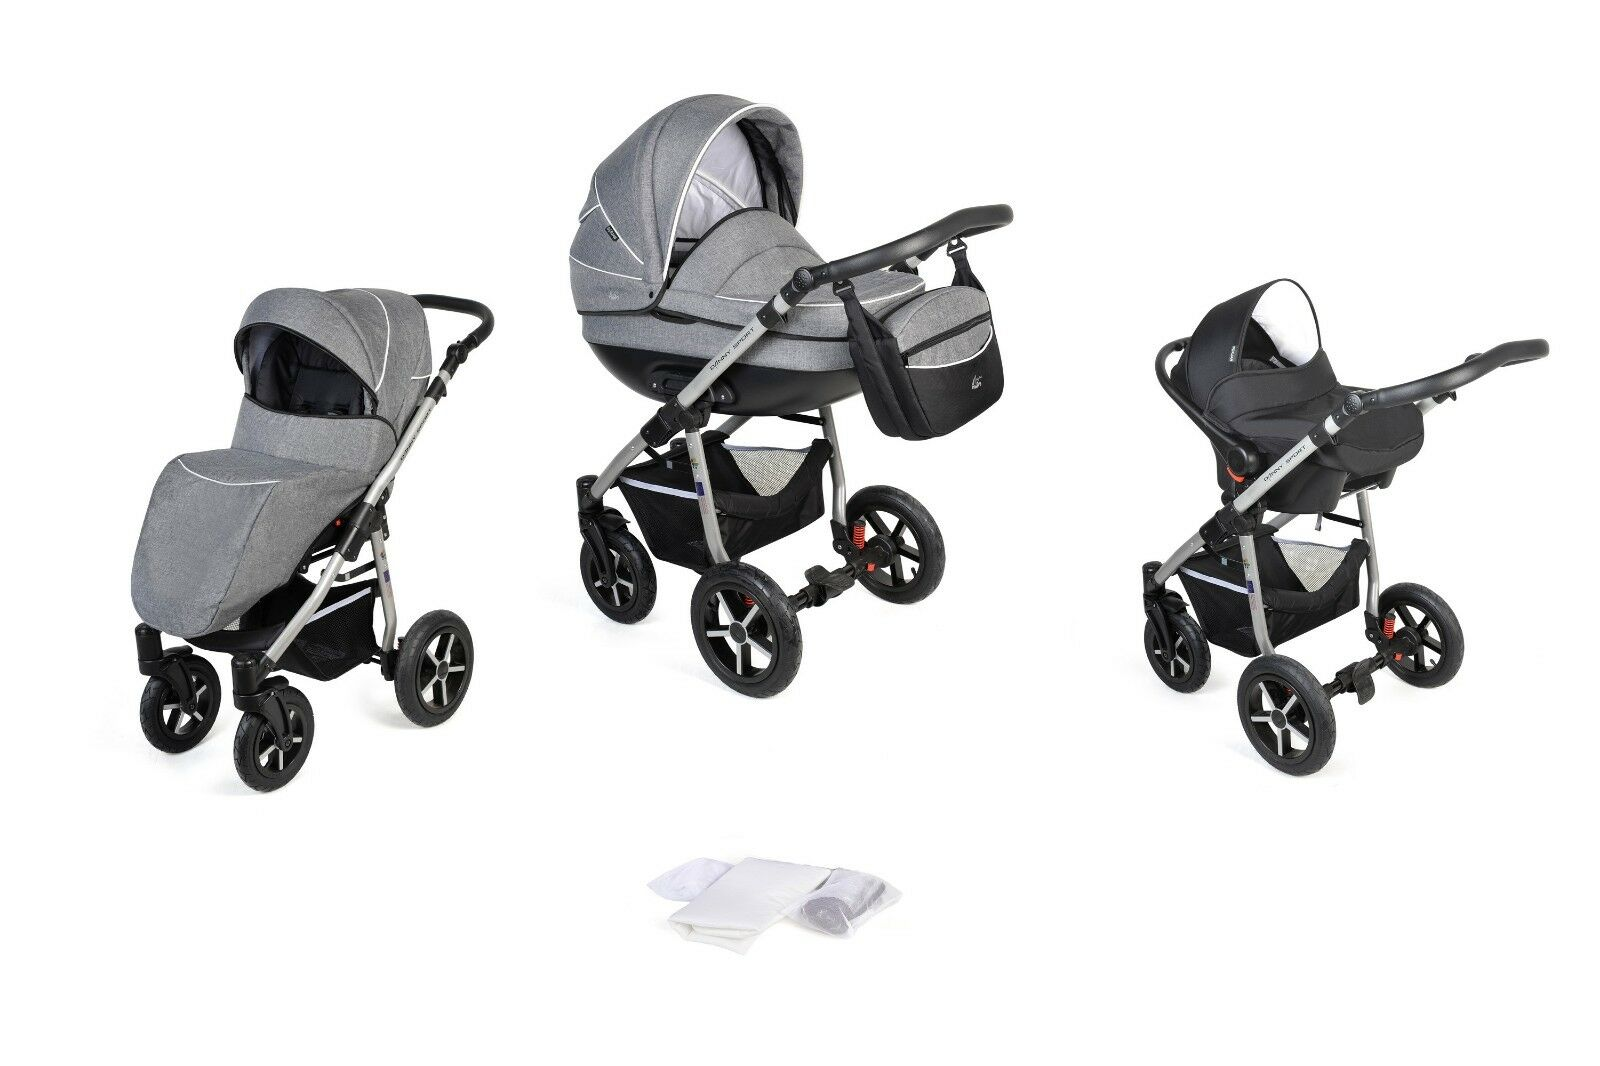 coral kombikinderwagen kinderwagen 3in1 mit babyschale v 0 13 kg luftreifen eur 279 00. Black Bedroom Furniture Sets. Home Design Ideas